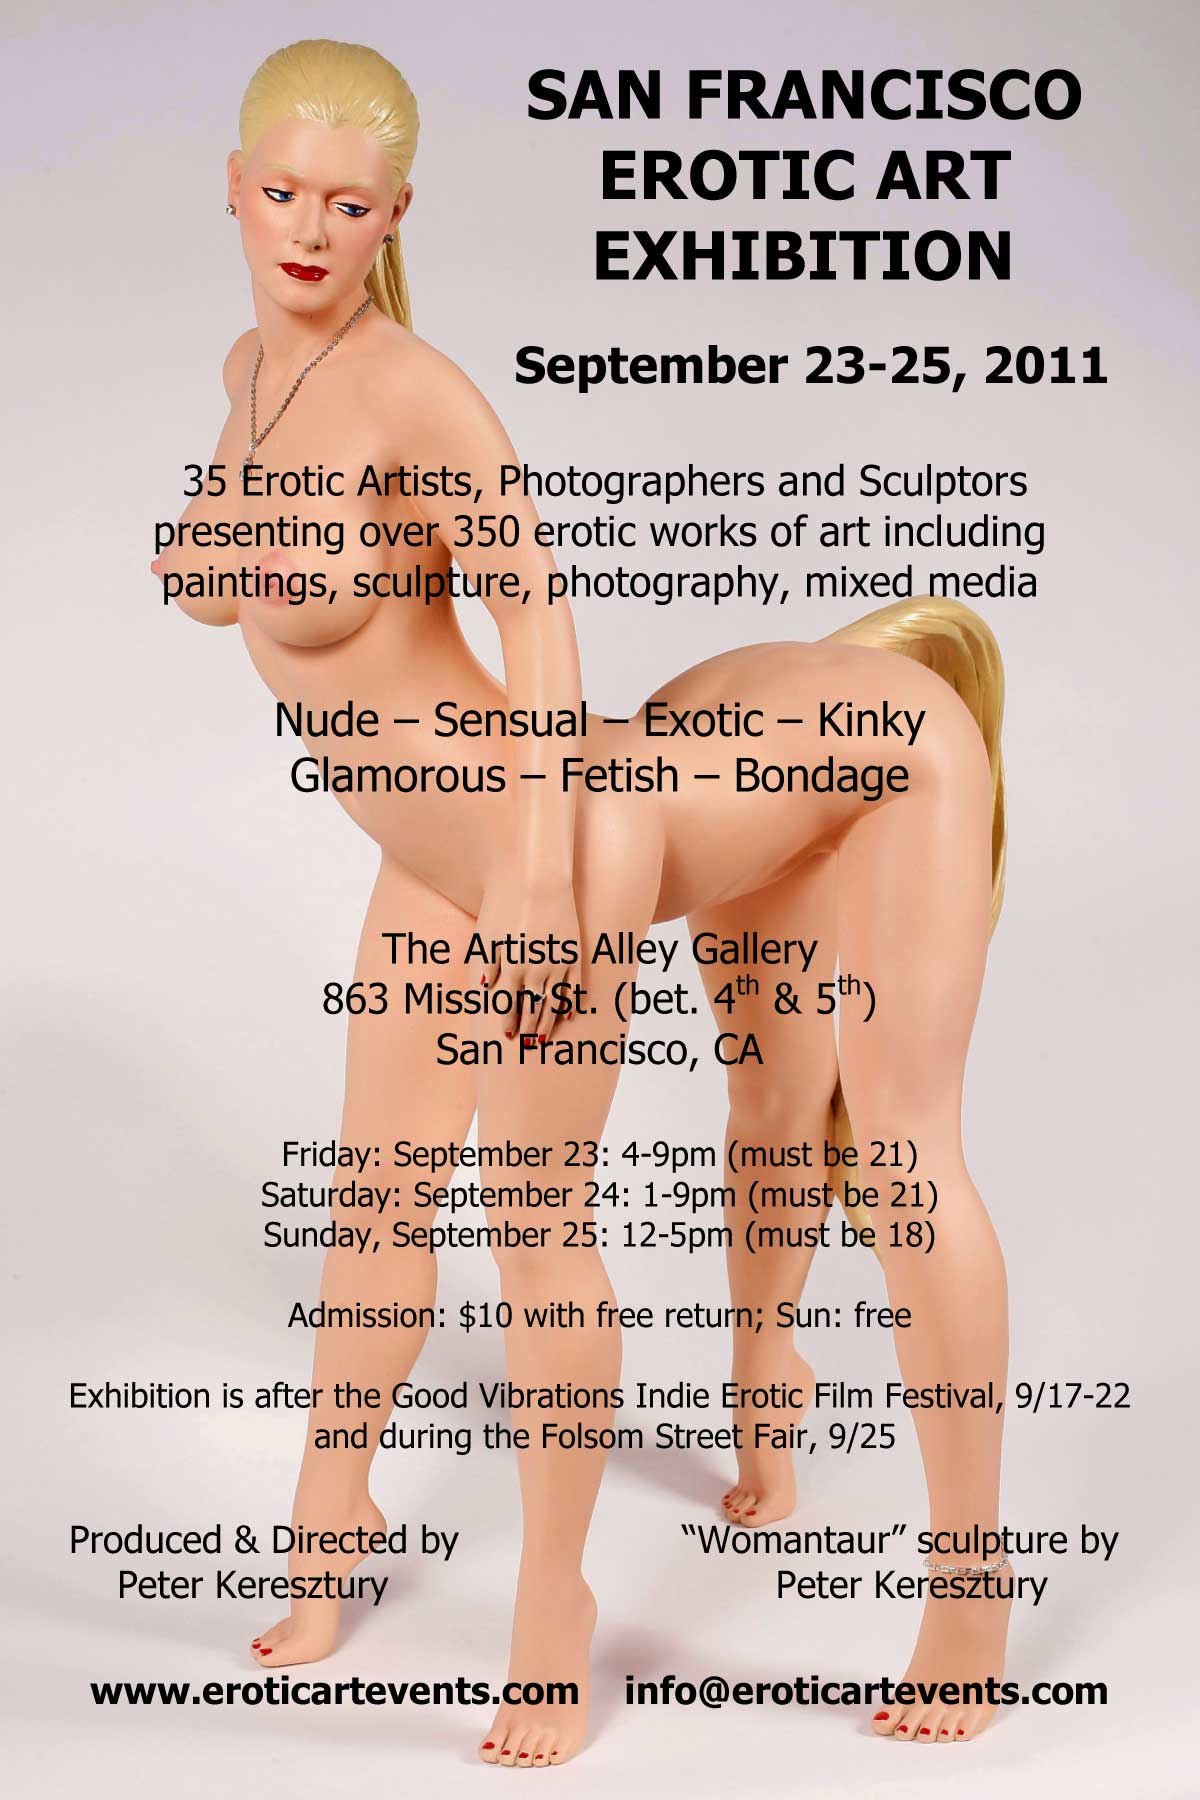 San-Francisco-Erotic-Art-Exhibition-CARD